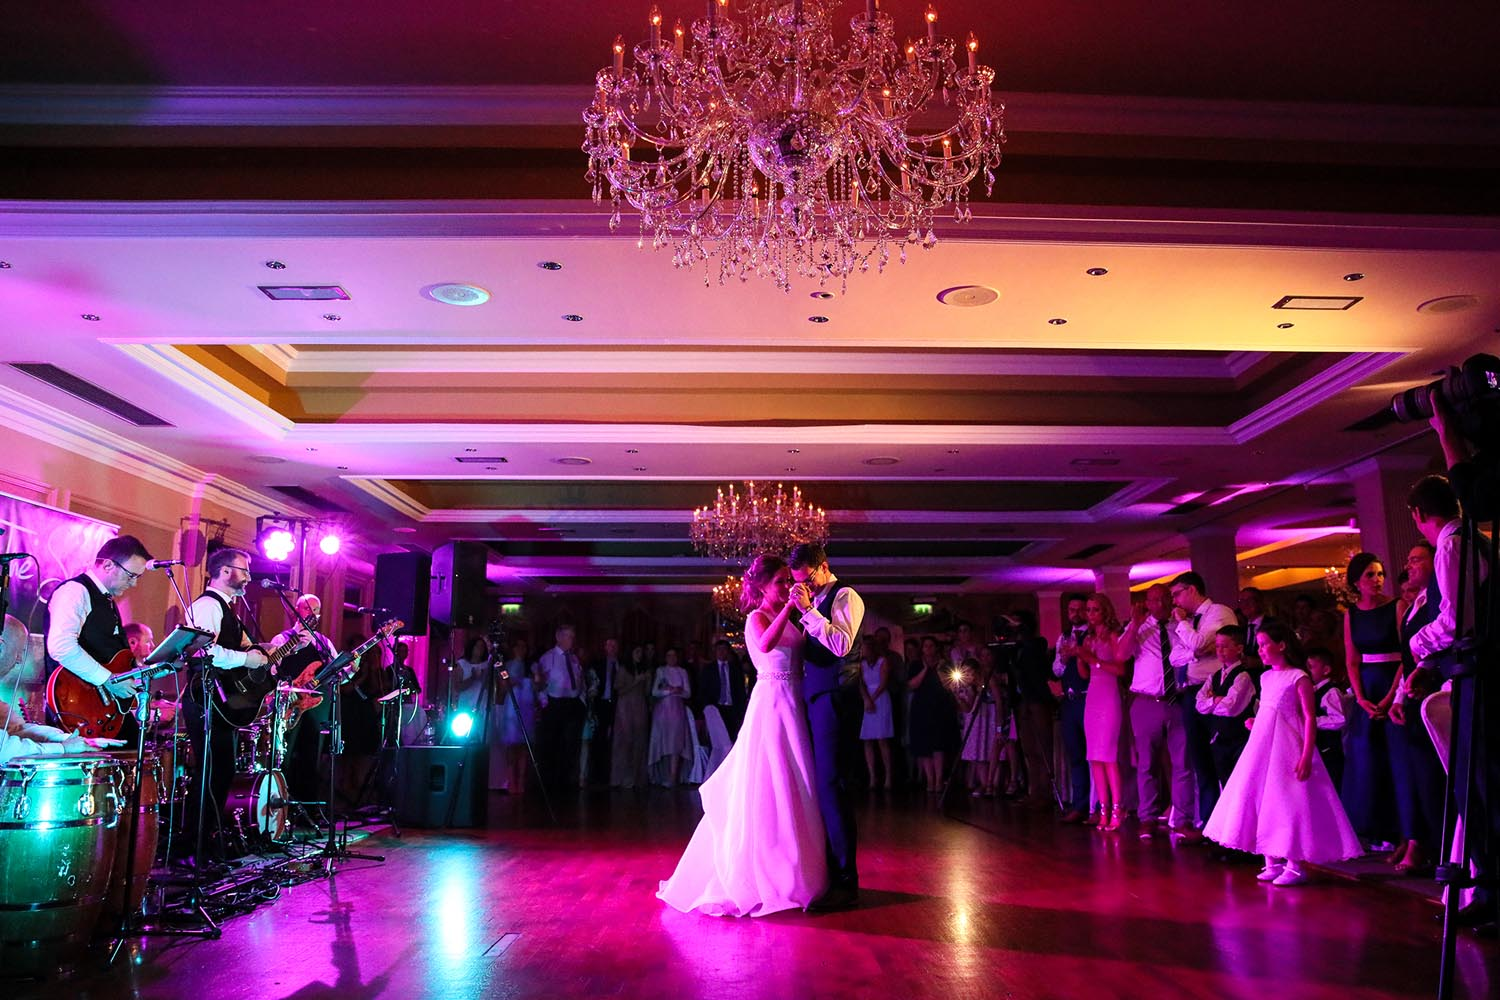 Couple dance as everyone looks on during a wedding